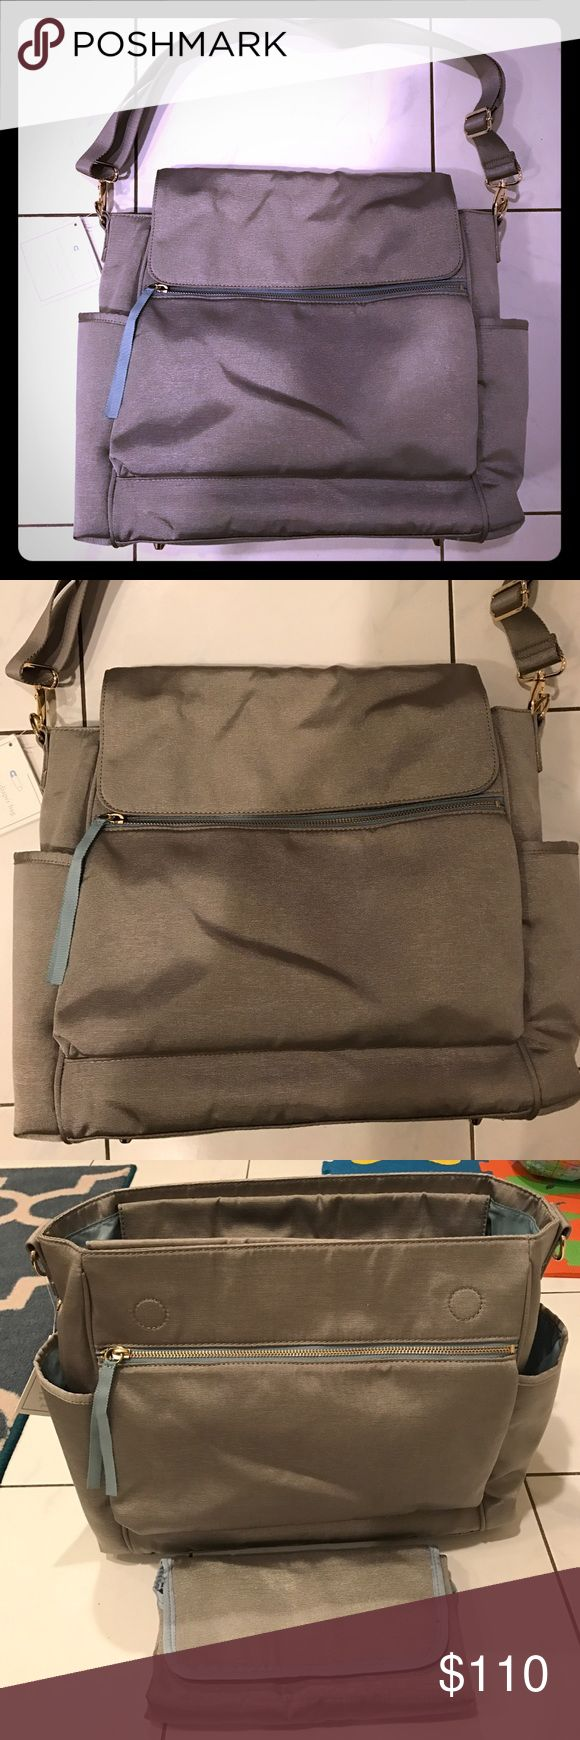 💕FLASH SALE💕BRAND NEW Pottery Barn Diaper Bag BRAND NEW WITH TAG Pottery Barn Diaper Bag - beautiful grey diaper bag with light blue interior accents & zipper pulls & gold hardware. Never used and in mint Condition. Comes with matching diaper changing pad. Tons of pockets as seen in photos. Adjustable strap as well as hidden straps to convert to a backpack. Magnetic closure for bag & changing pad. Last picture shows 3 slight marks in fabric but this is how I received bag. Retails for $159…